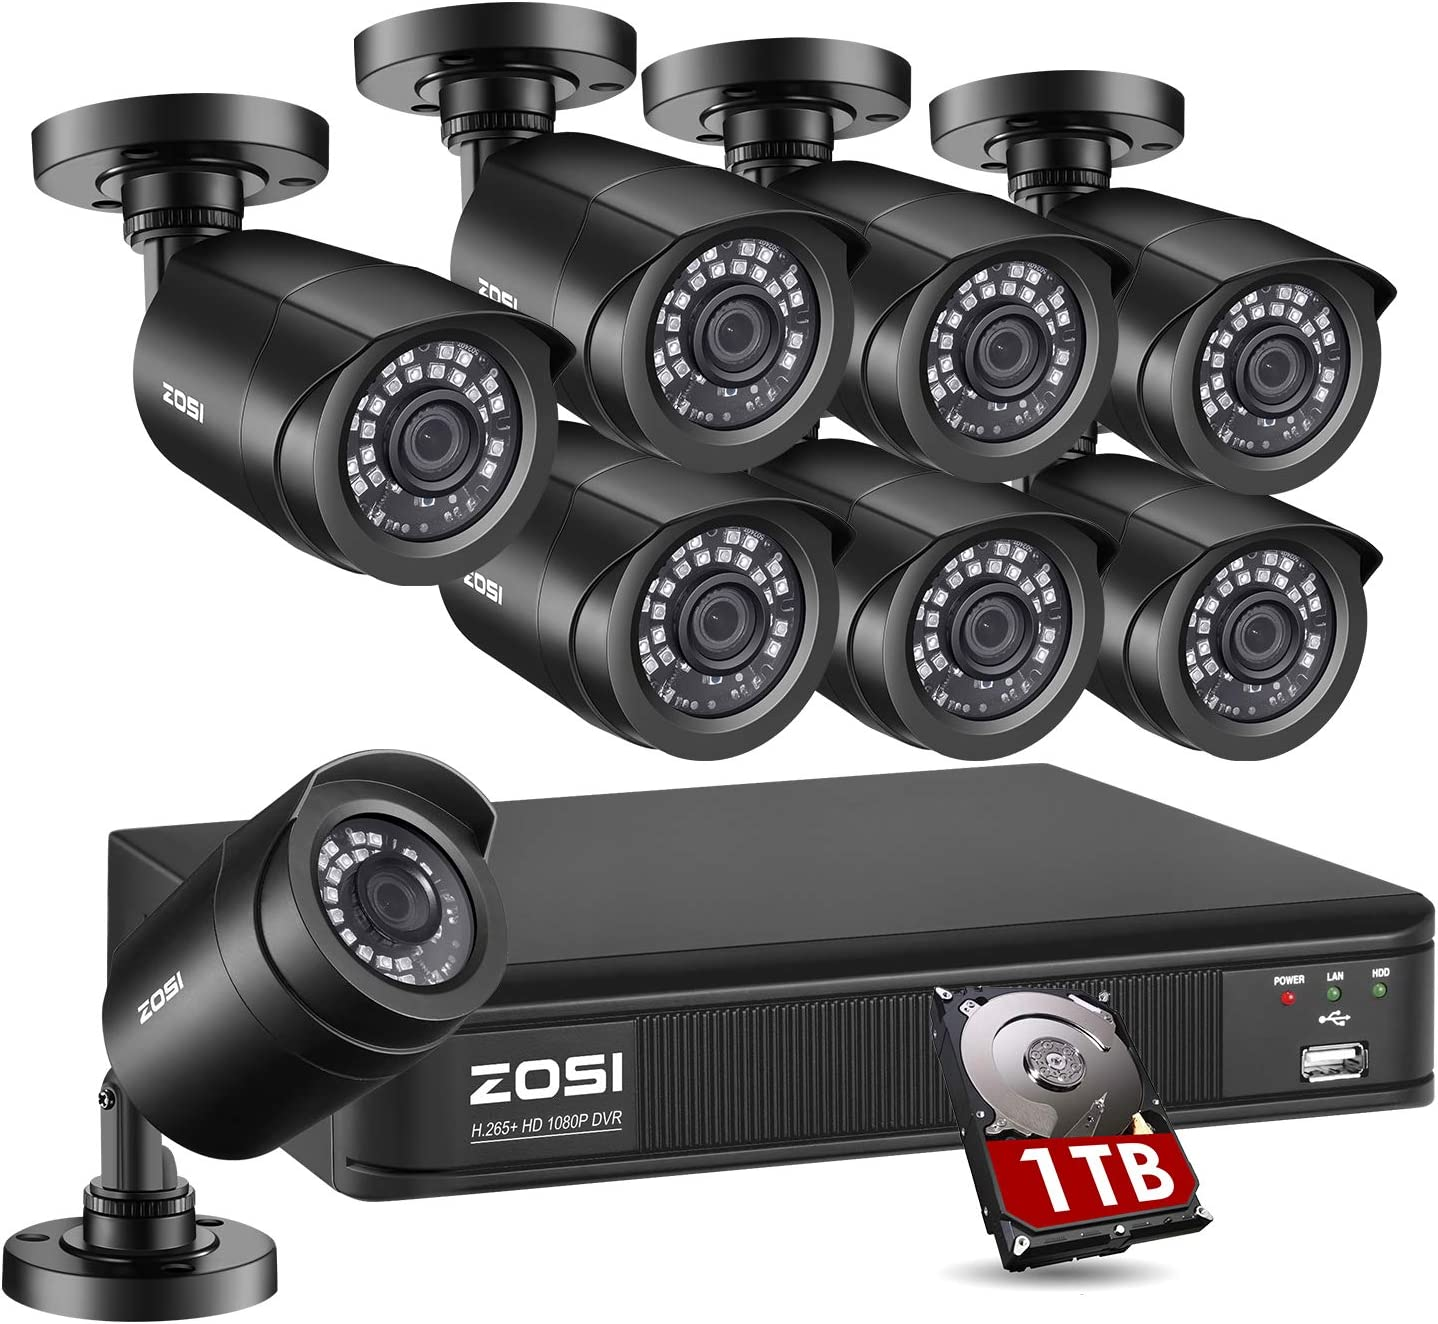 ZOSI H.265+1080p Home Security Camera System Outdoor Indoor, 5MP Lite CCTV DVR Recorder 8 Channel with Hard Drive 1TB and 8 x 1080p Surveillance Bullet Camera with 80ft Night Vision, Motion Detection